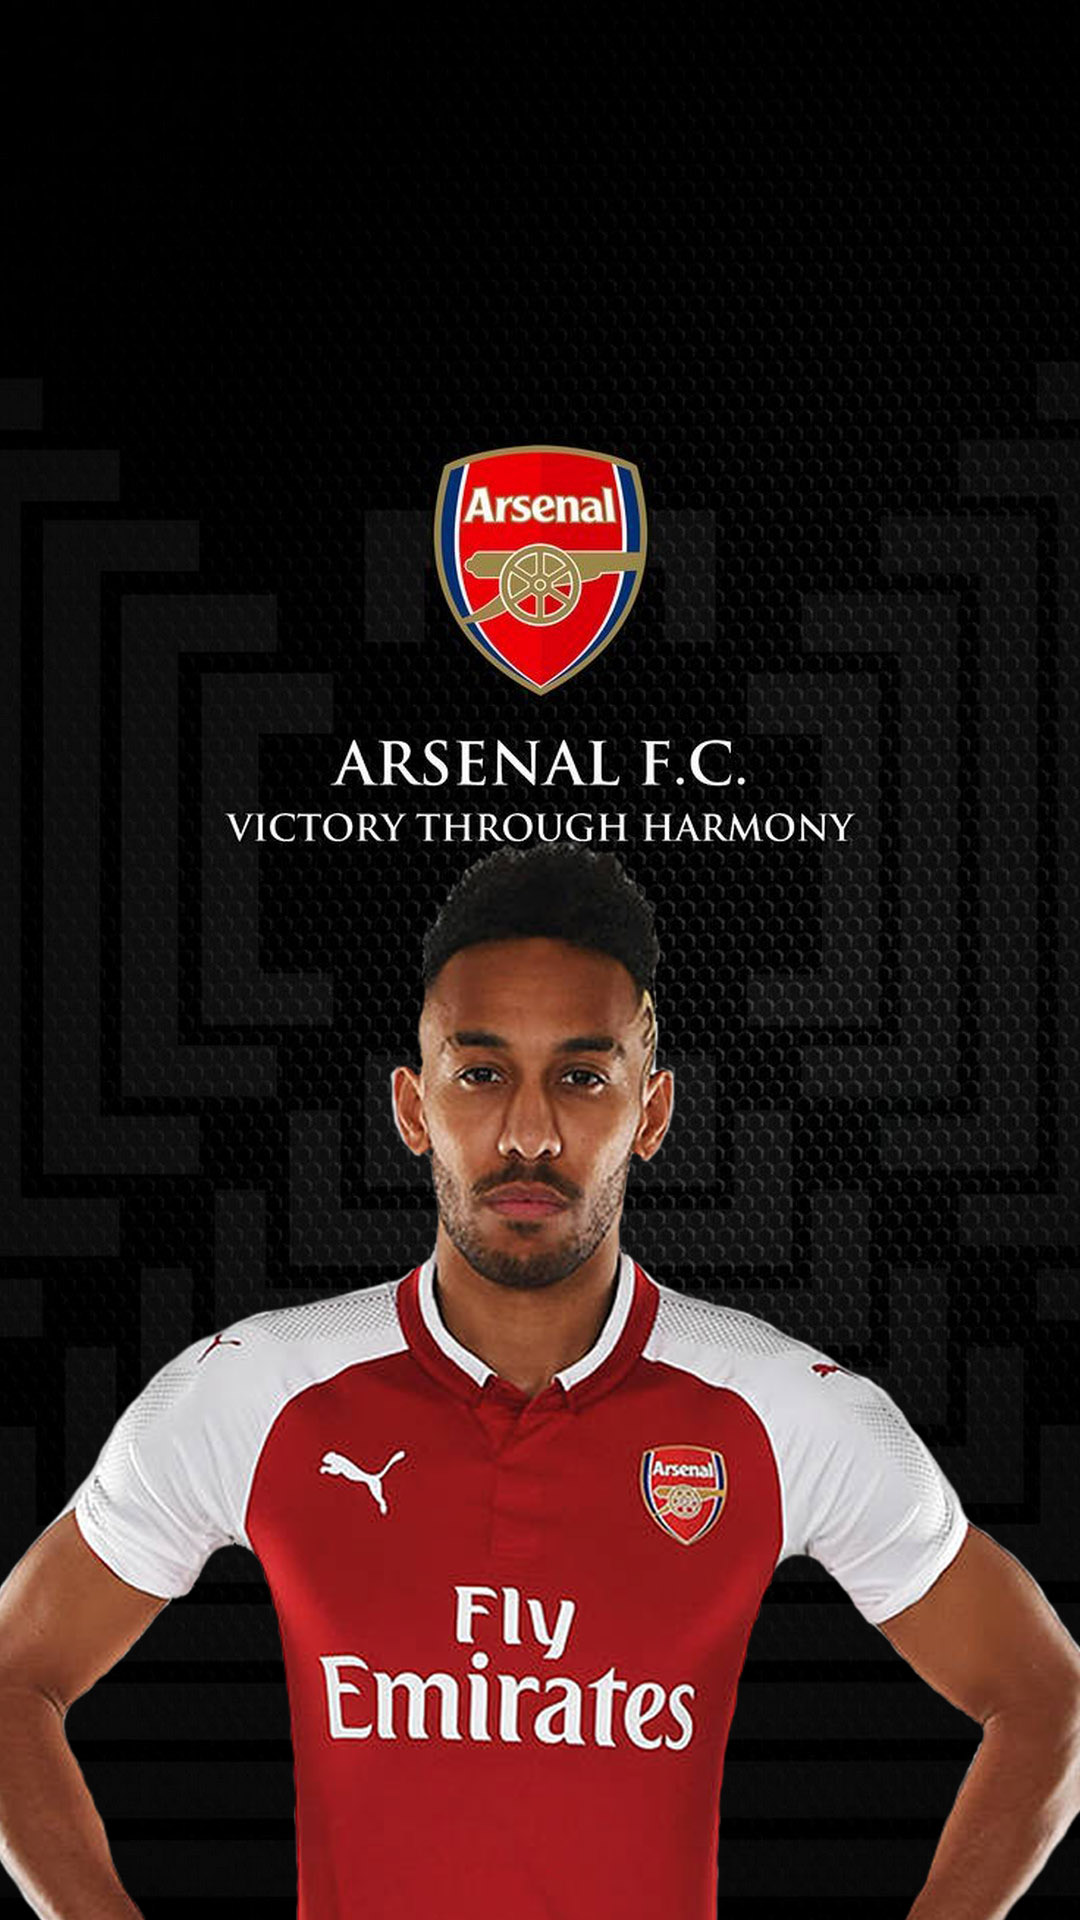 Pierre Emerick Aubameyang Arsenal Wallpaper Android   2019 Android 1080x1920